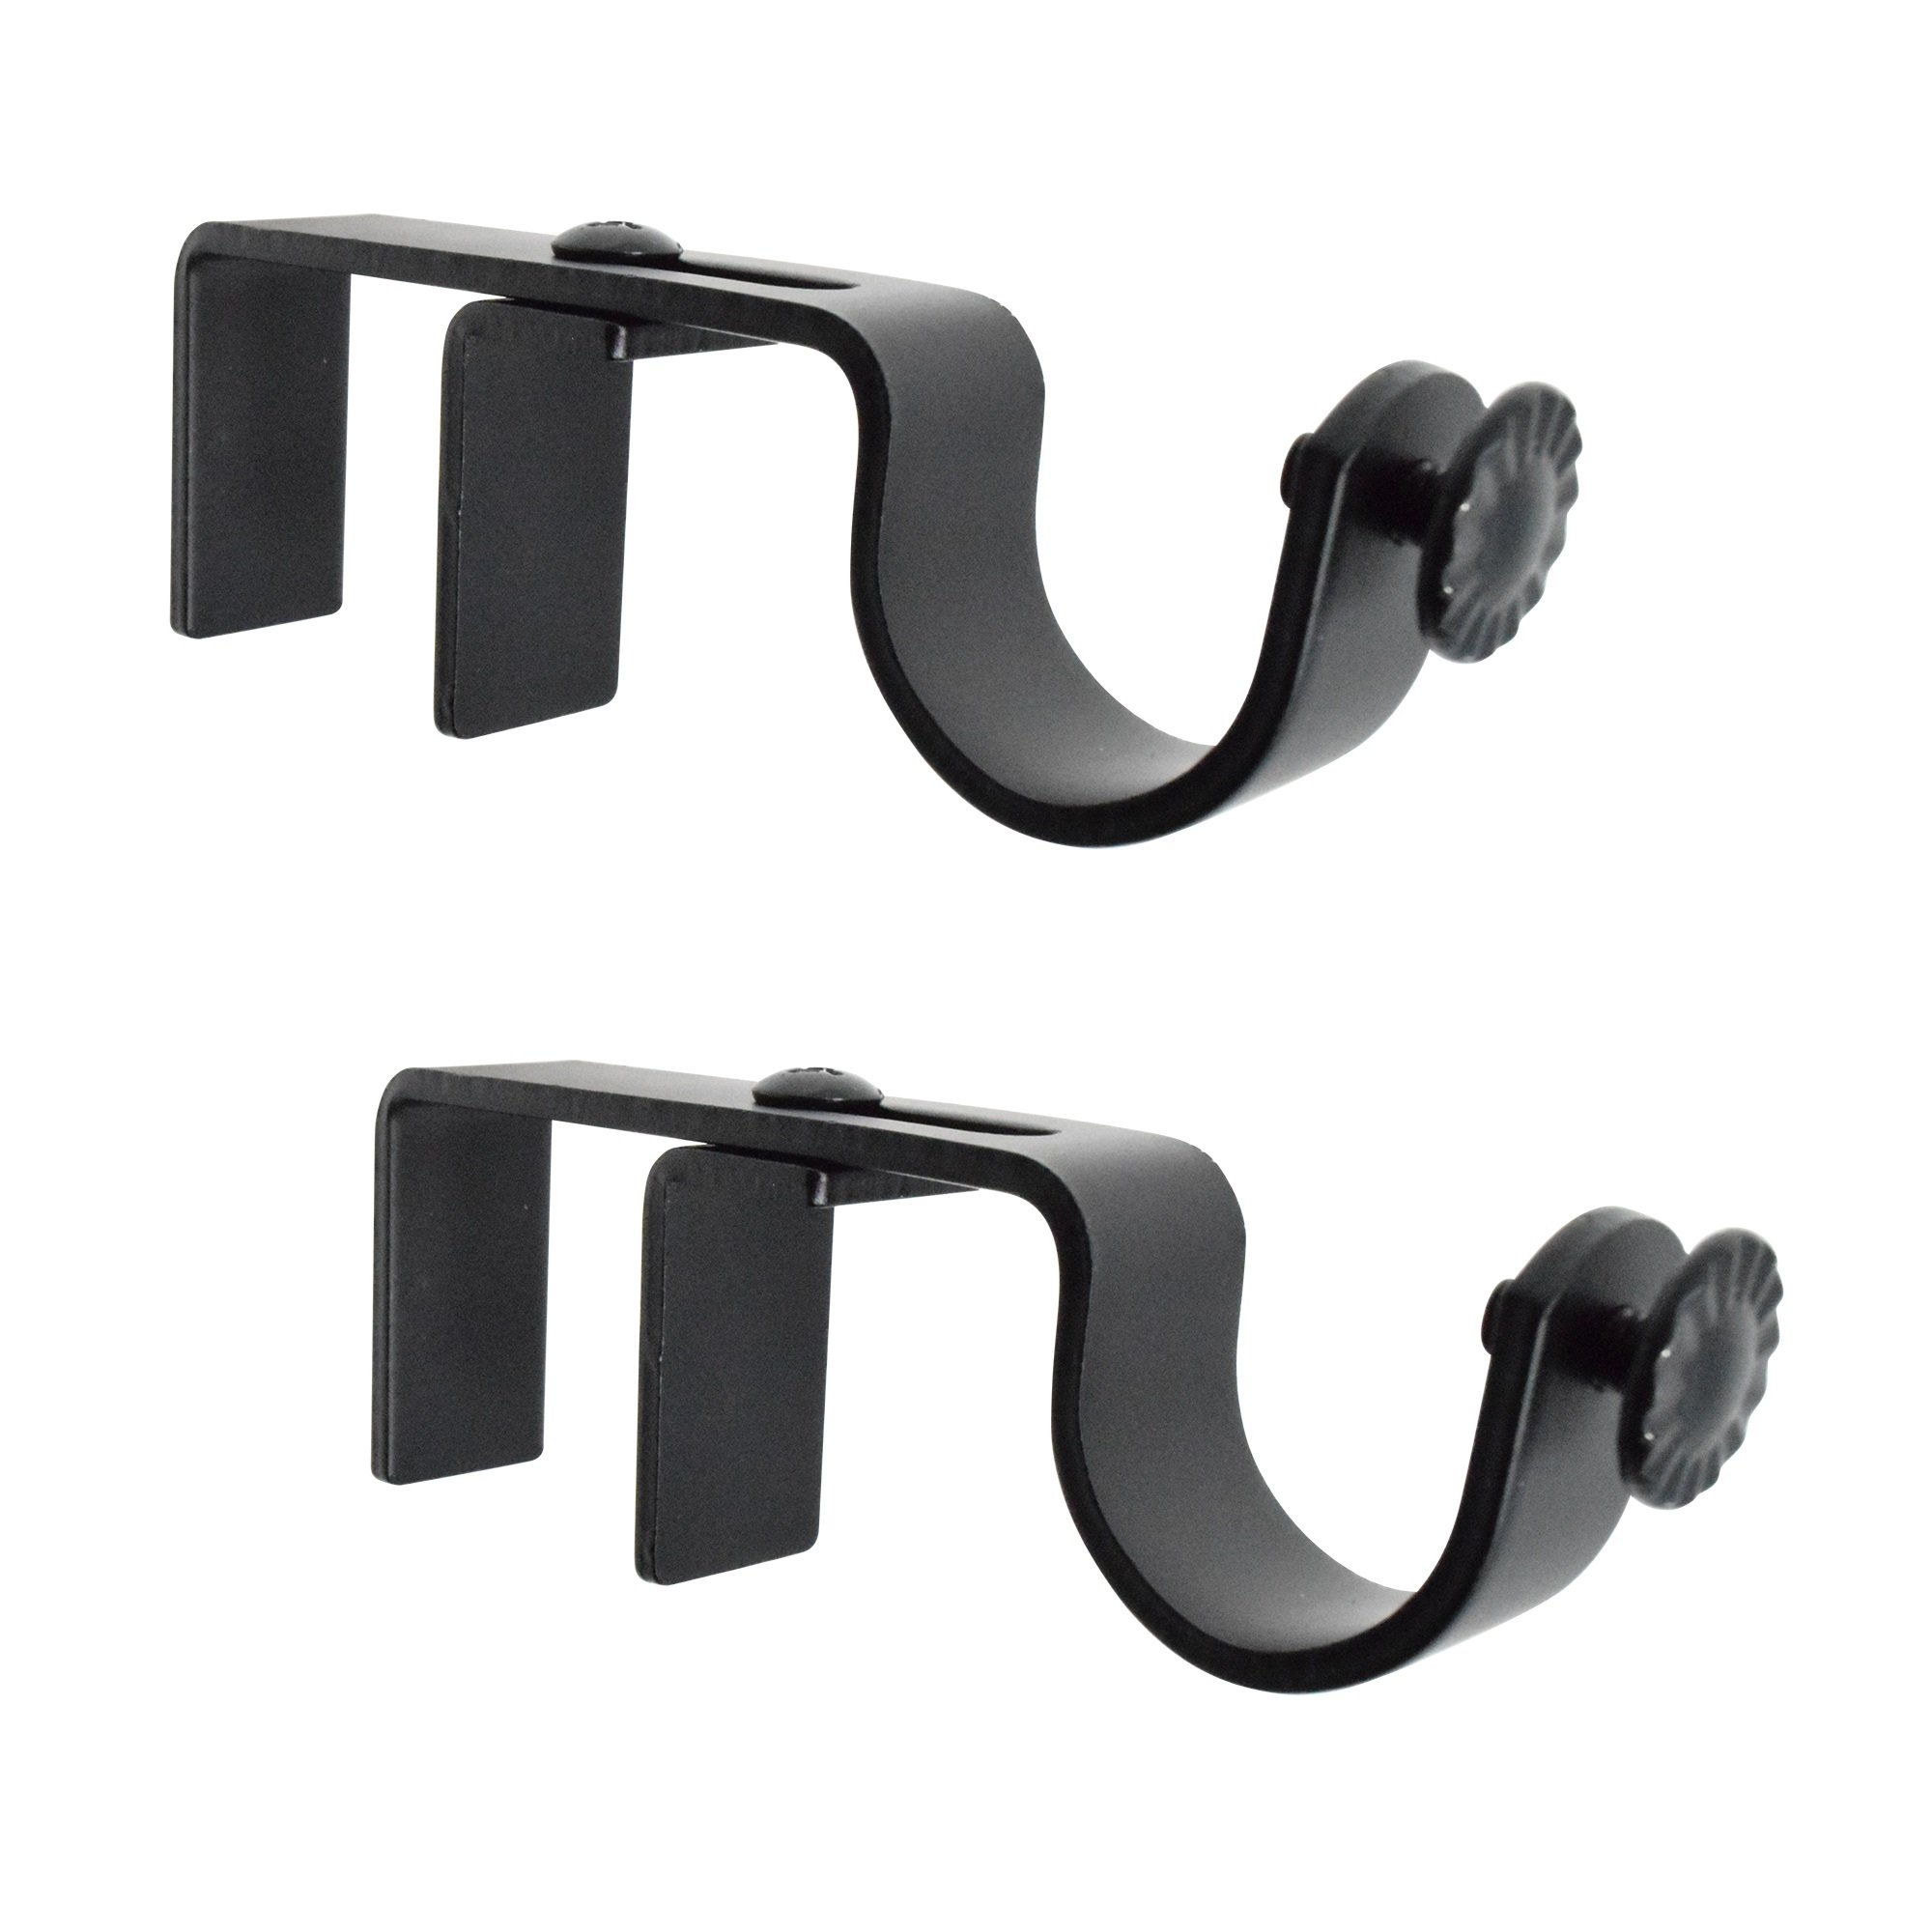 GbHome GH 6758B Adjustable Curtain Rod Bracket For Placing Over Outside Mounted Blinds Set